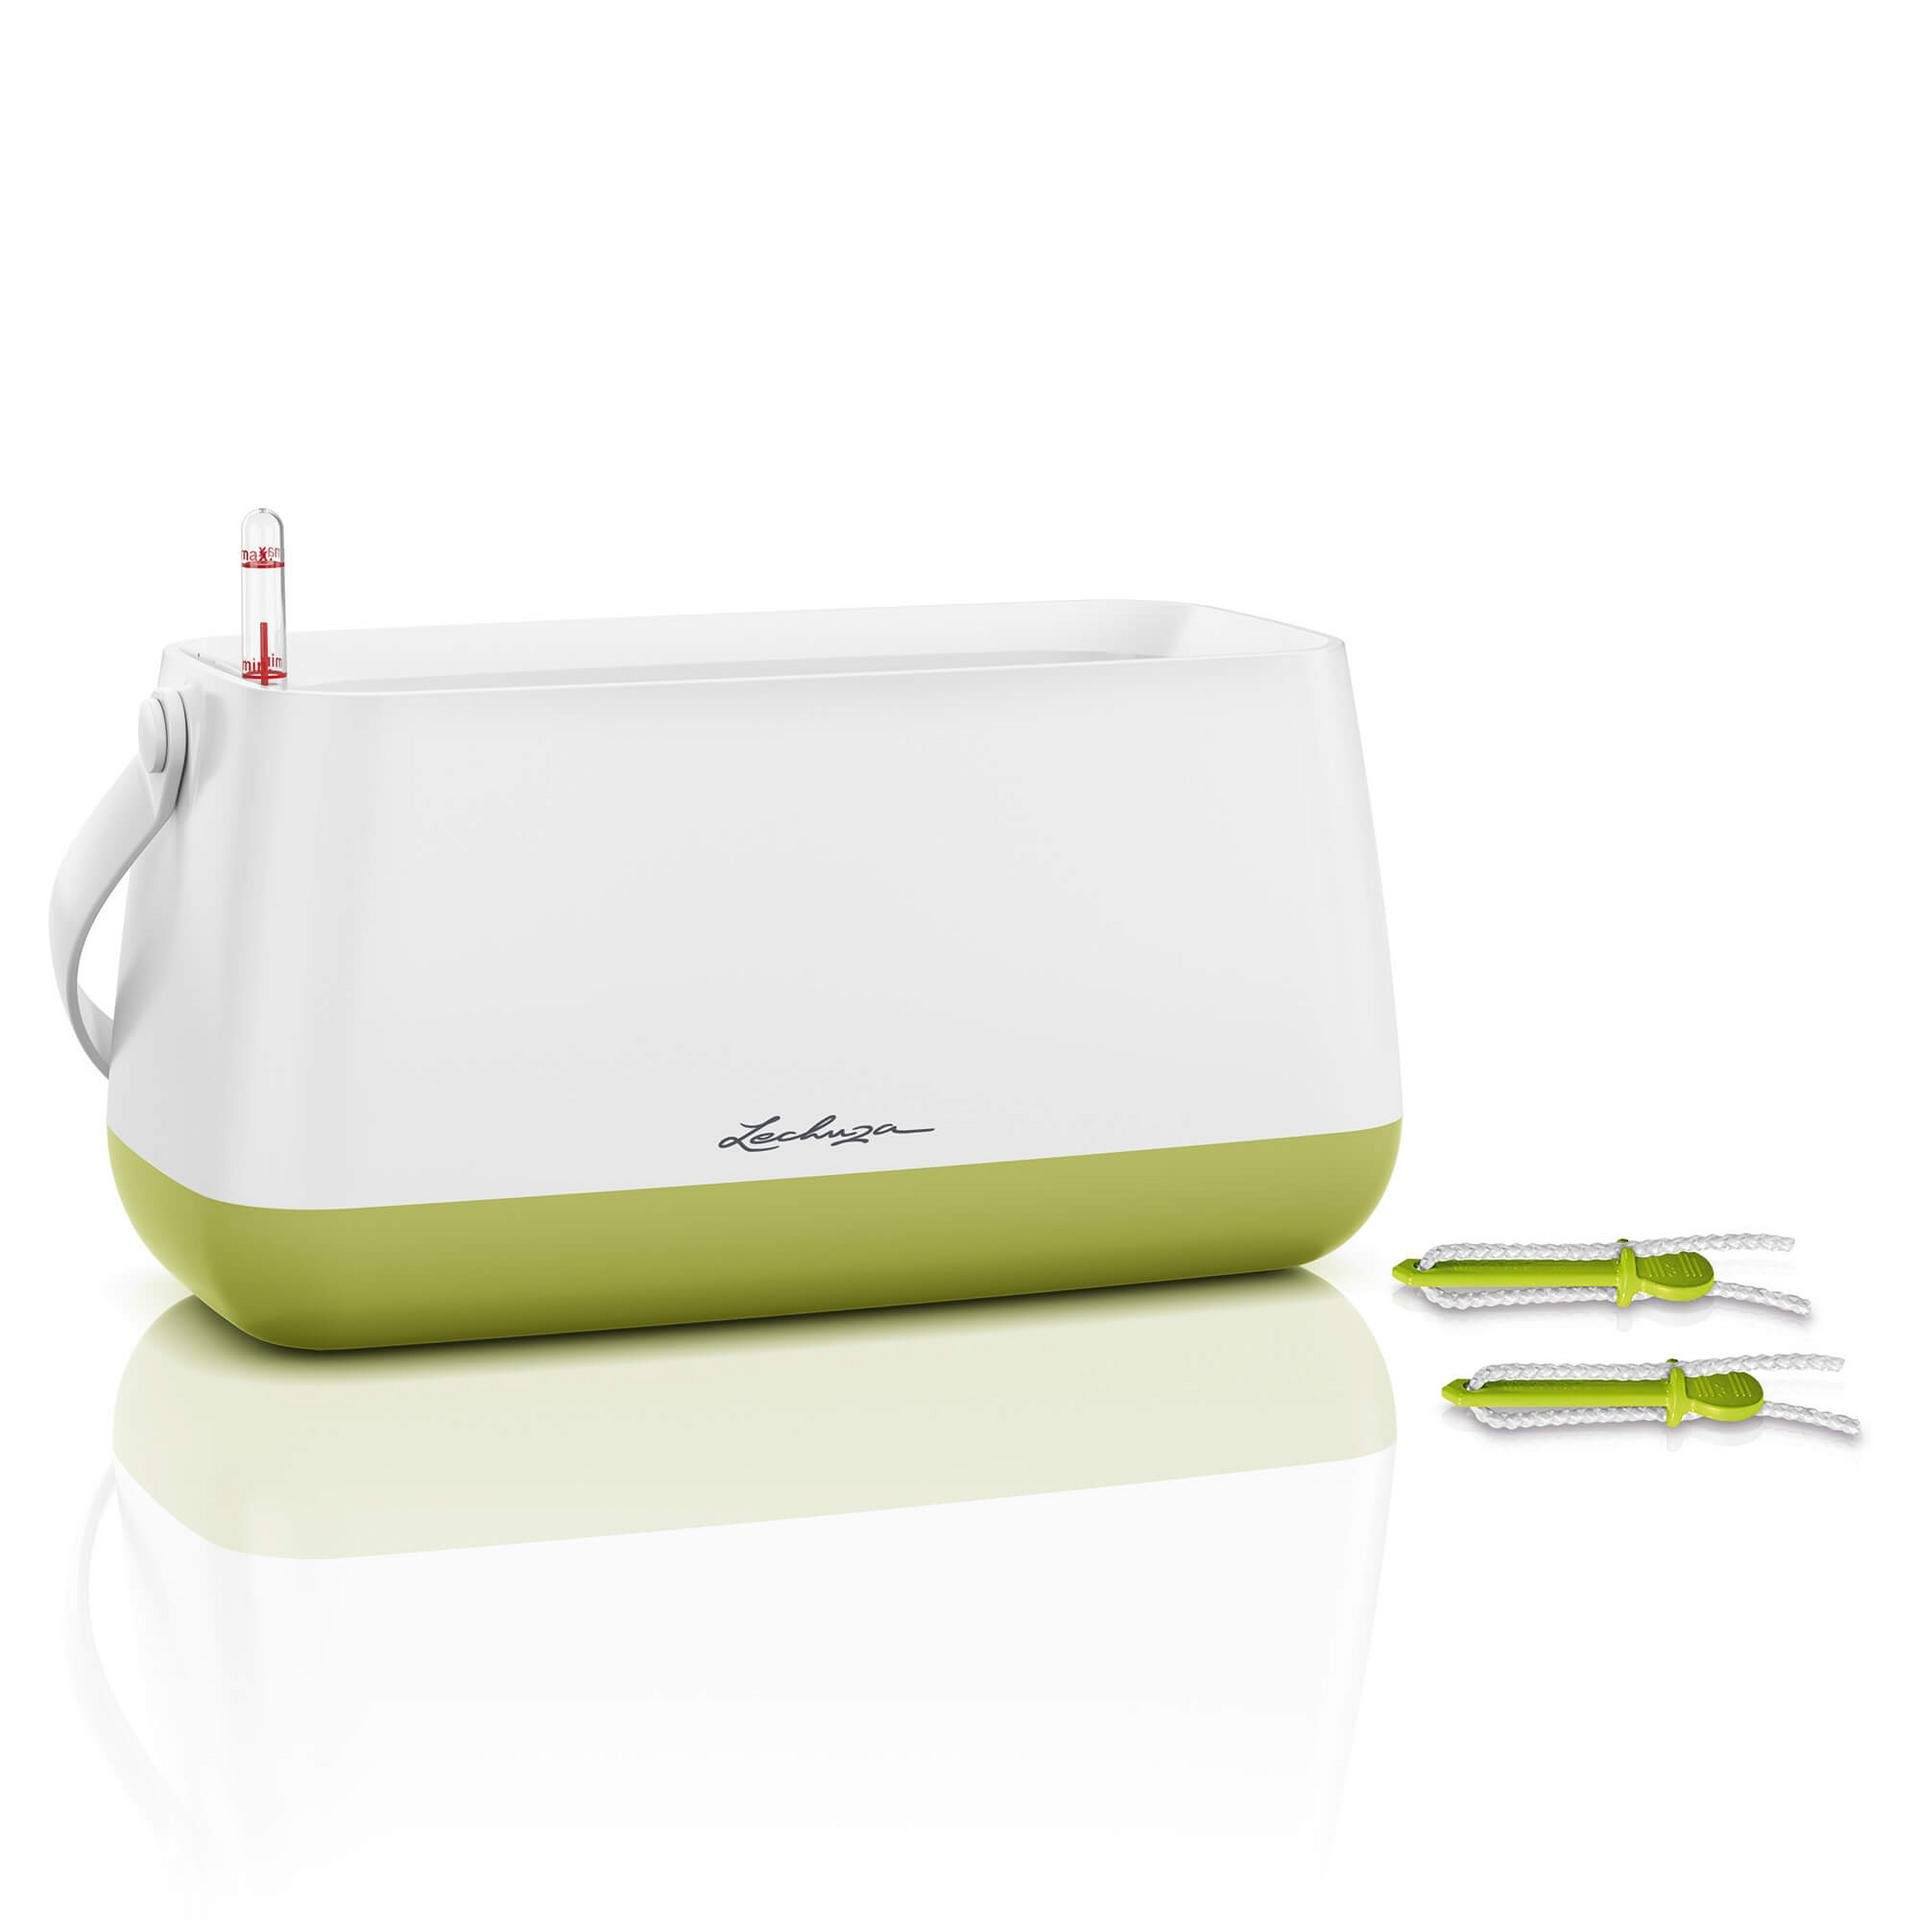 le_yula-pflanztasche_product_addi_aio